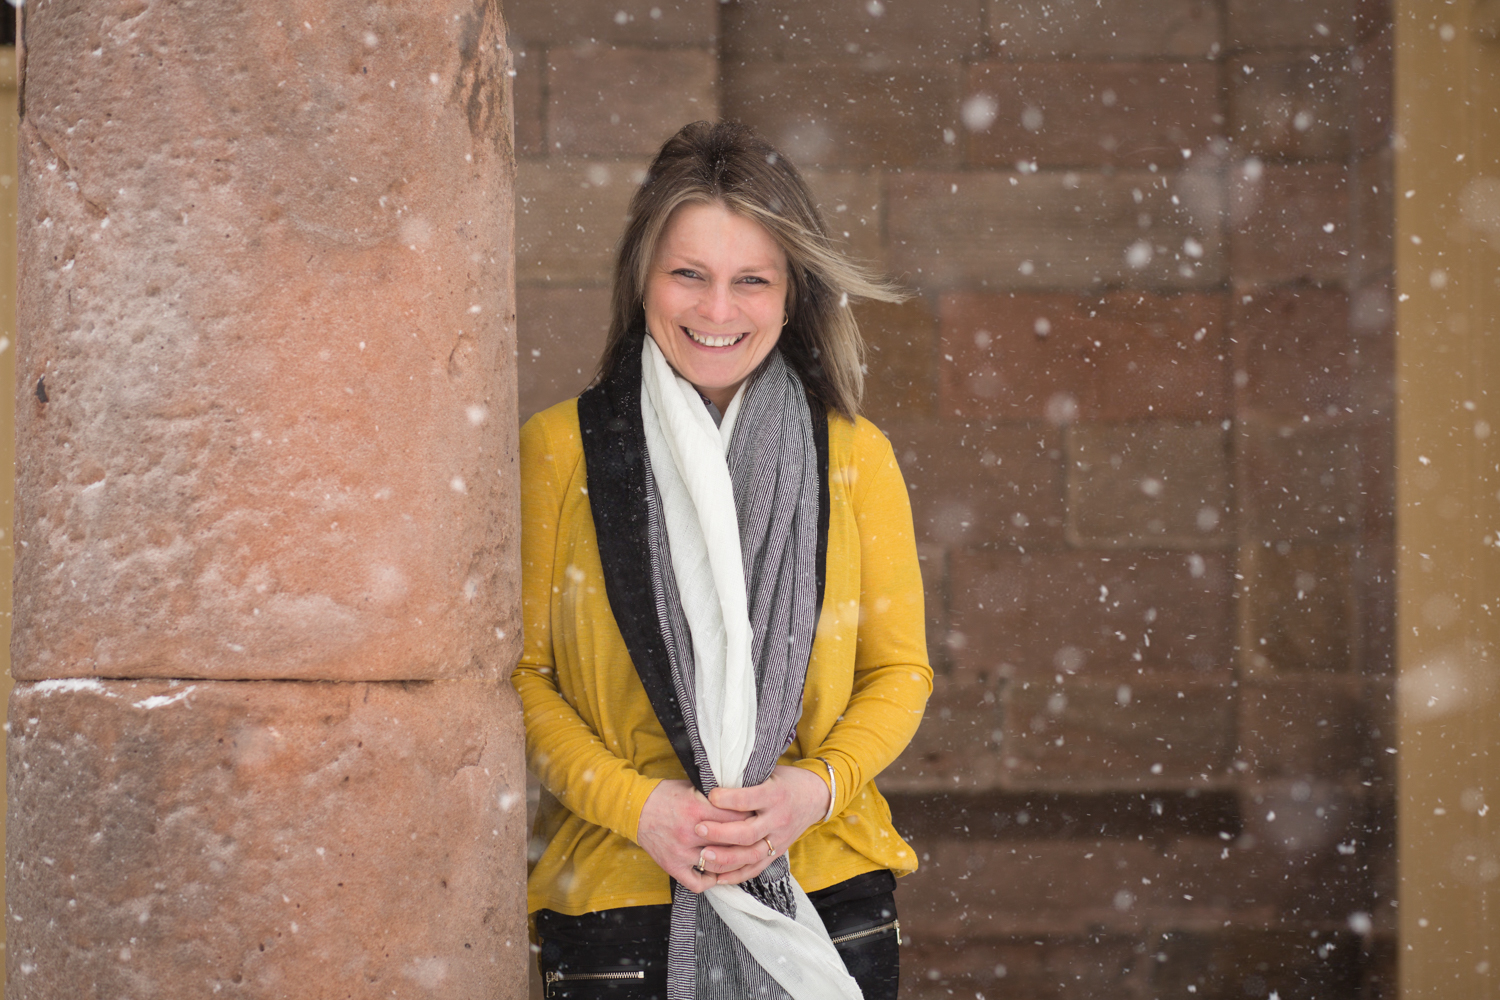 WEB-wendy-steven-headshot-eyemouth-counselling-relationship-stress-grief-anxiety-berevement-pictorial-studio-snow---4.jpg